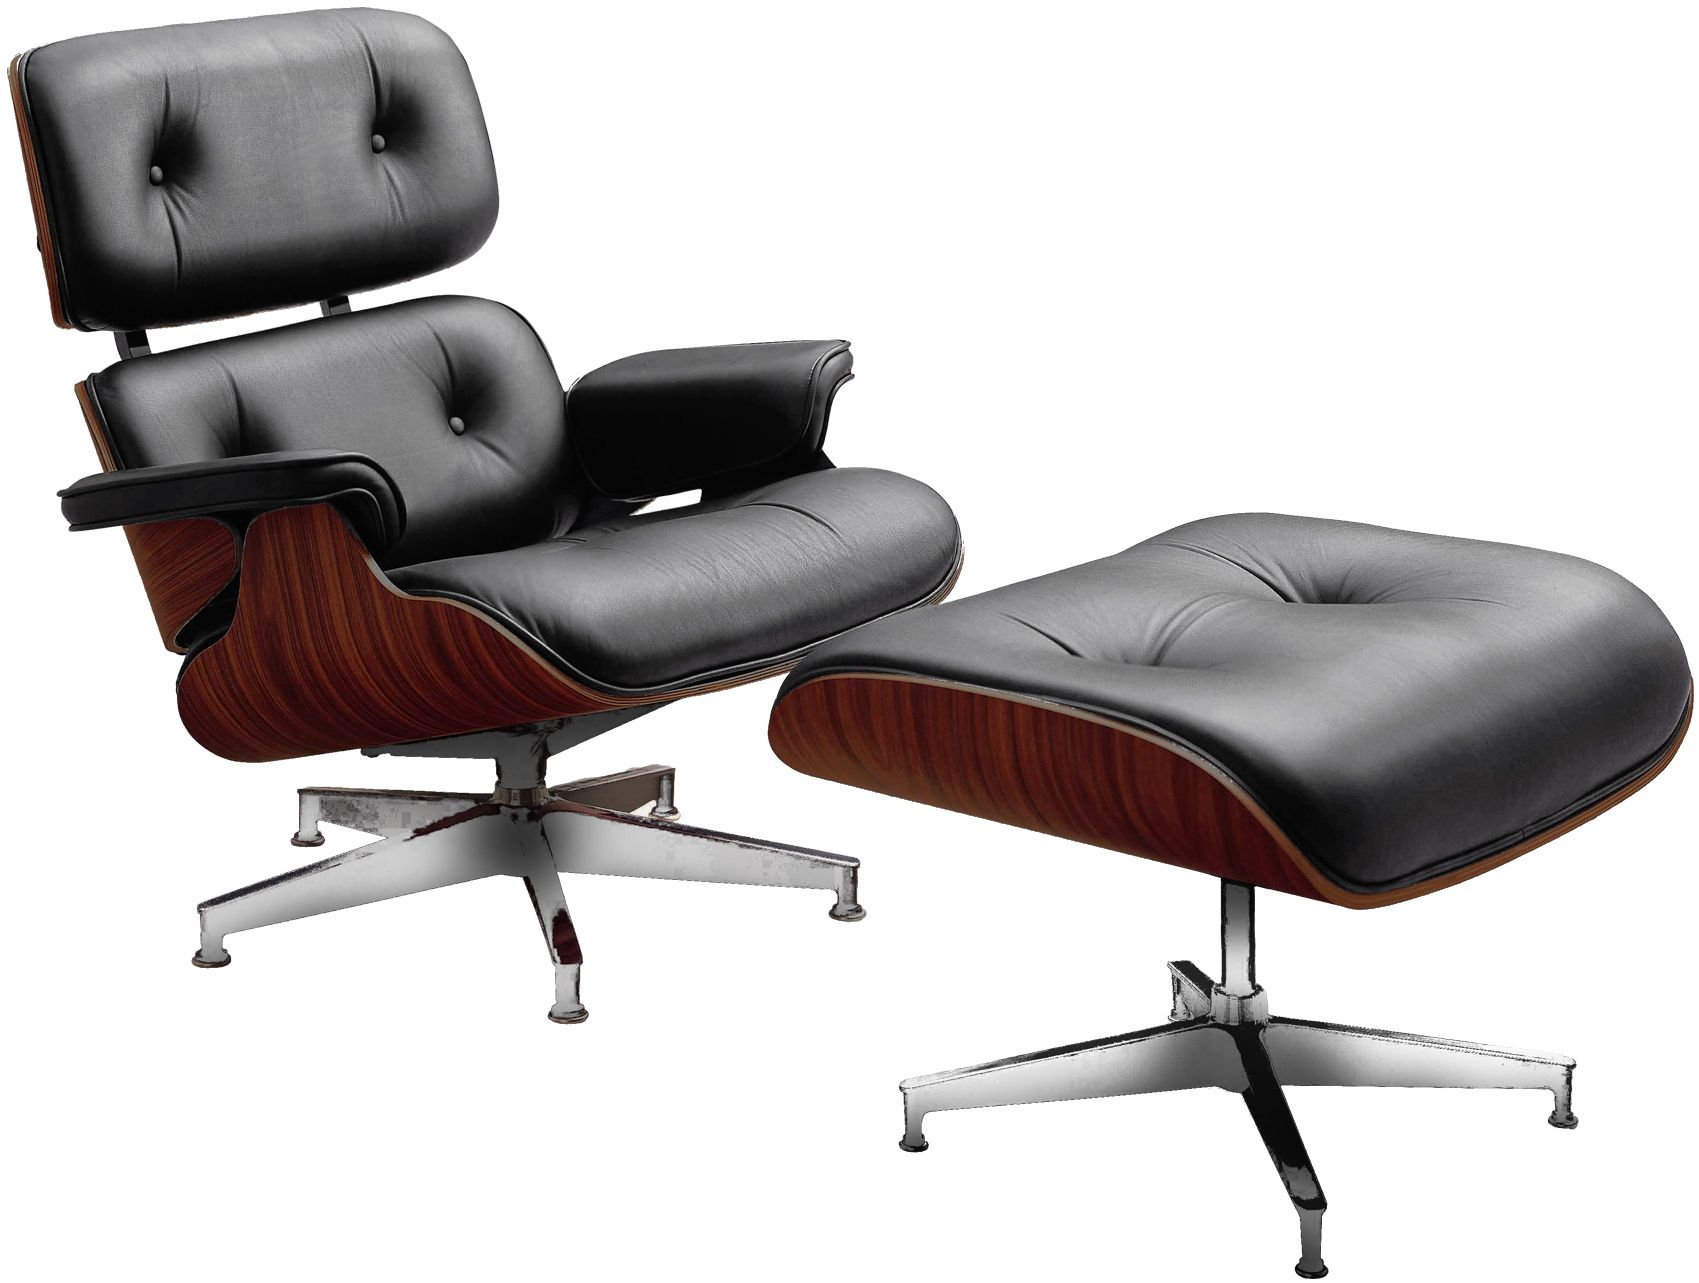 Lounge Chair Charles Eames charles eames style leather lounge chair specialist furniture